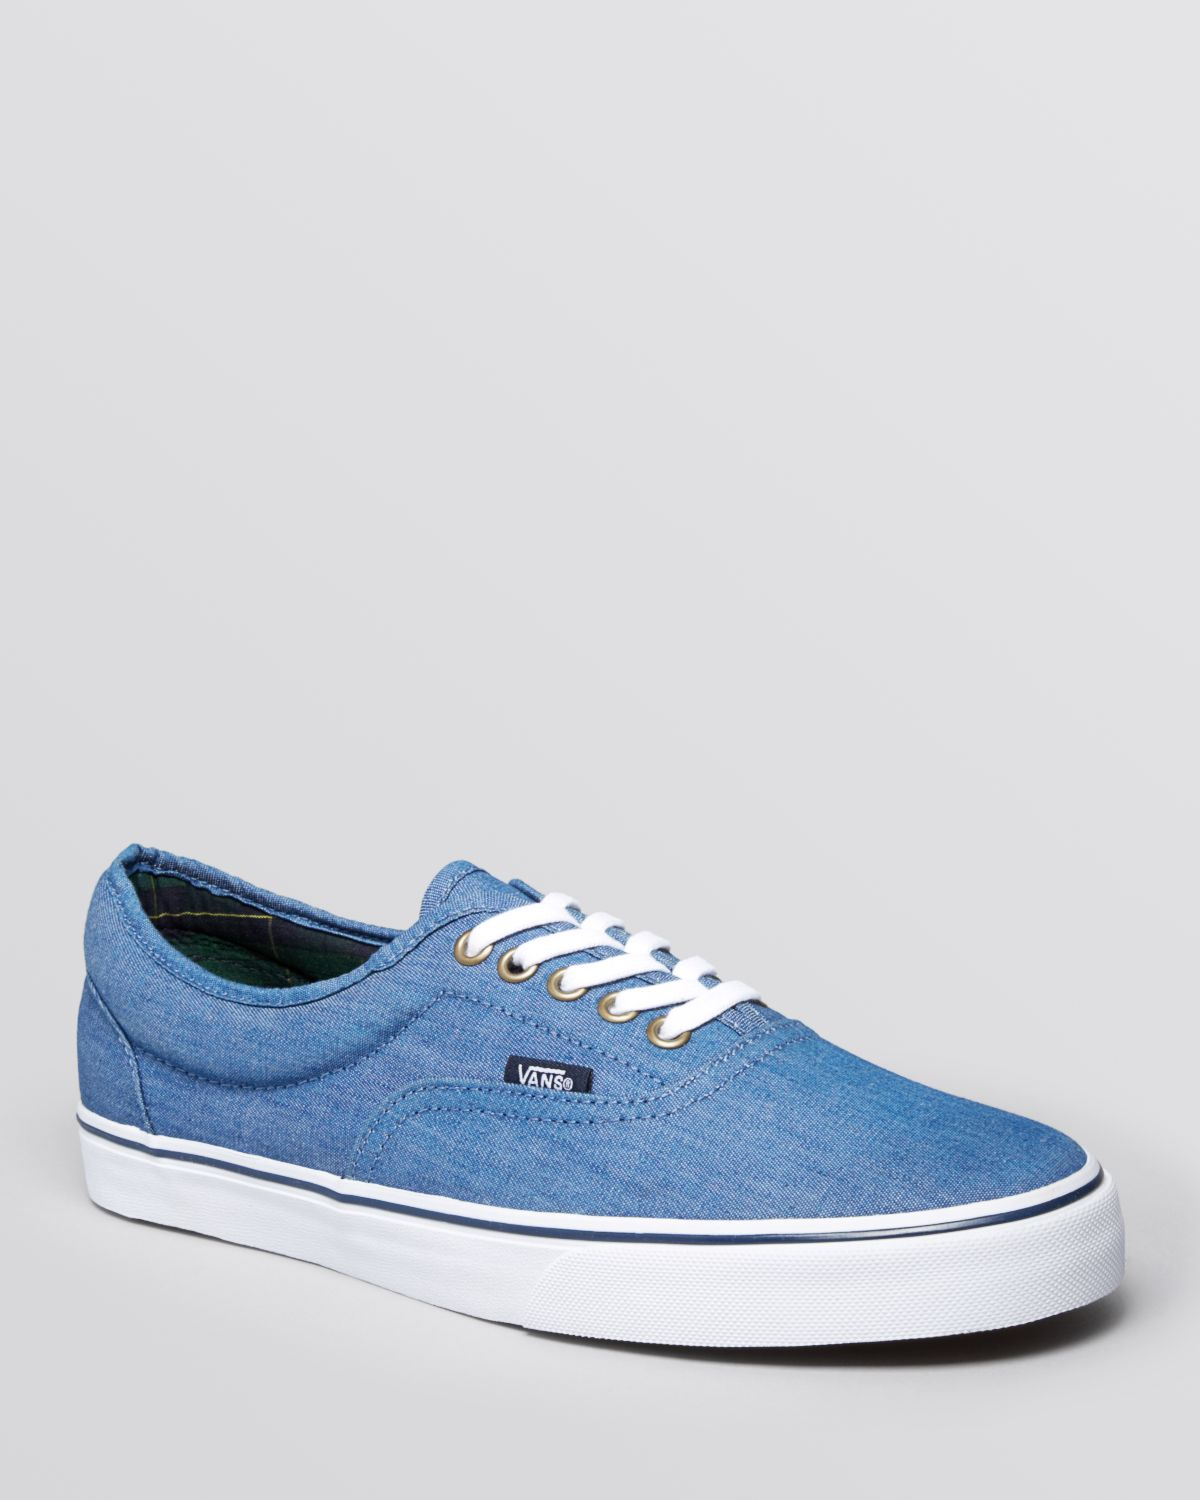 791130af8a56b1 Lyst - Vans Lpe C P Lace-Up Sneakers in Blue for Men